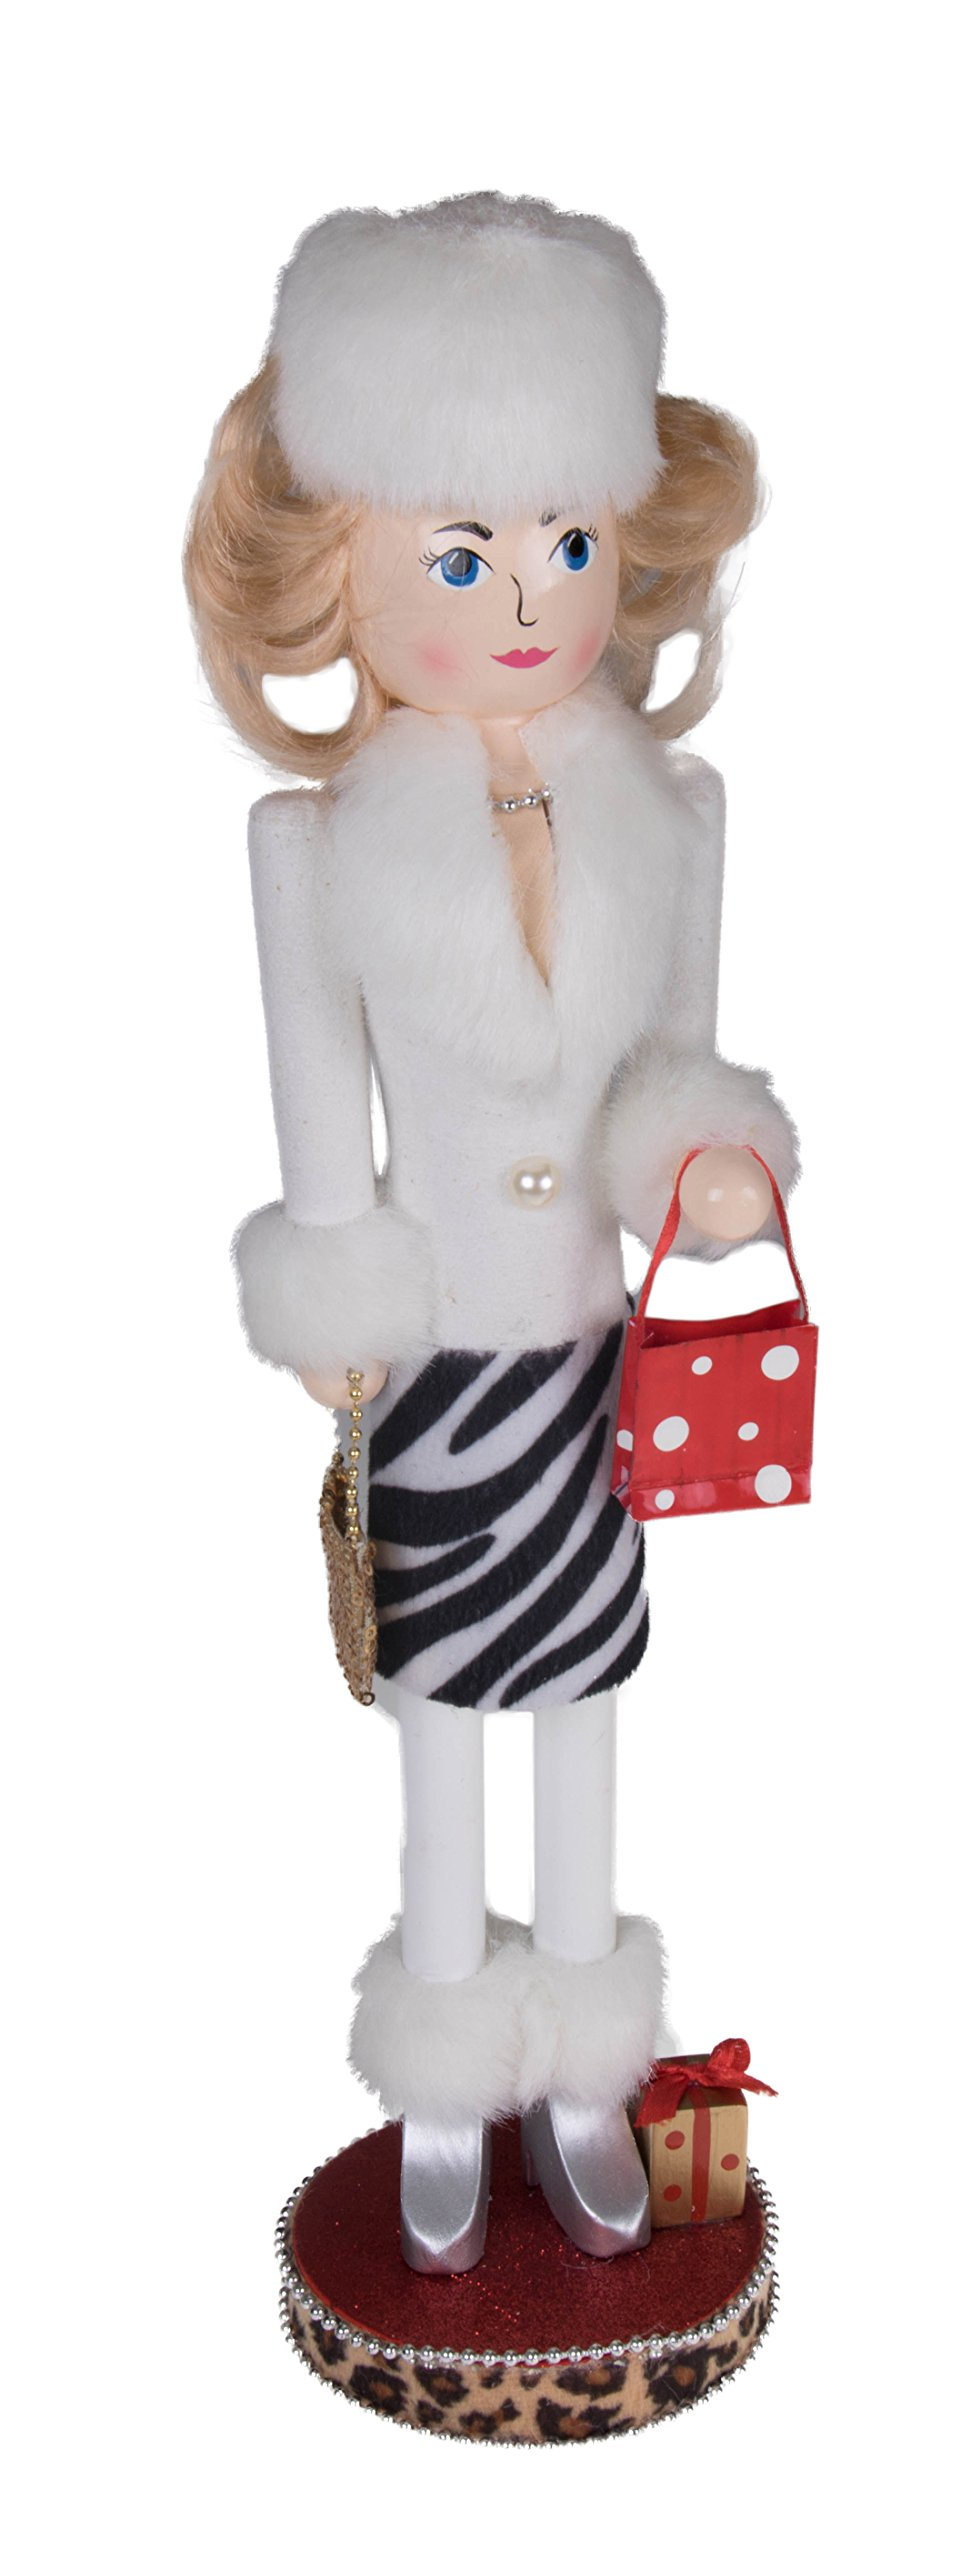 Woman Shopping Christmas Nutcracker by Clever Creations | White Fur Coat and Zebra Print Skirt | Festive Decor | Purse & Red Polka Dot Gift Bag | 100% Wood | Perfect For Shelves &Tables | 15'' Tall